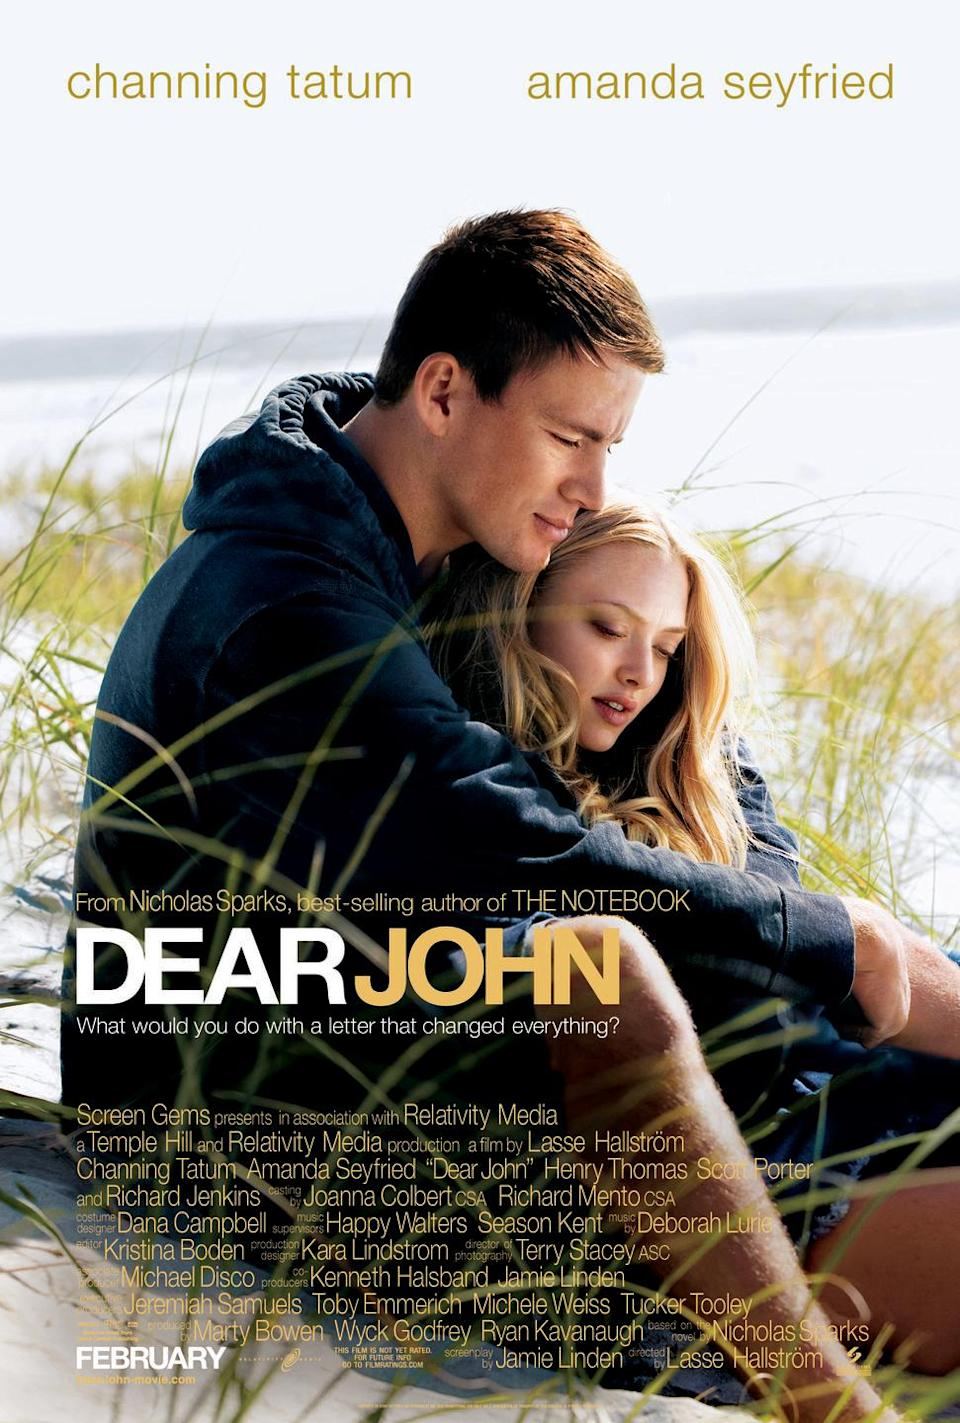 """<p><a class=""""link rapid-noclick-resp"""" href=""""https://www.amazon.com/Dear-John-Channing-Tatum/dp/B003IWAQHE/ref=sr_1_1?tag=syn-yahoo-20&ascsubtag=%5Bartid%7C10050.g.25810122%5Bsrc%7Cyahoo-us"""" rel=""""nofollow noopener"""" target=""""_blank"""" data-ylk=""""slk:STREAM NOW"""">STREAM NOW</a></p><p>A soldier falls in love with a hopeful college student as they rely on writing letters to each other while deployed.</p>"""